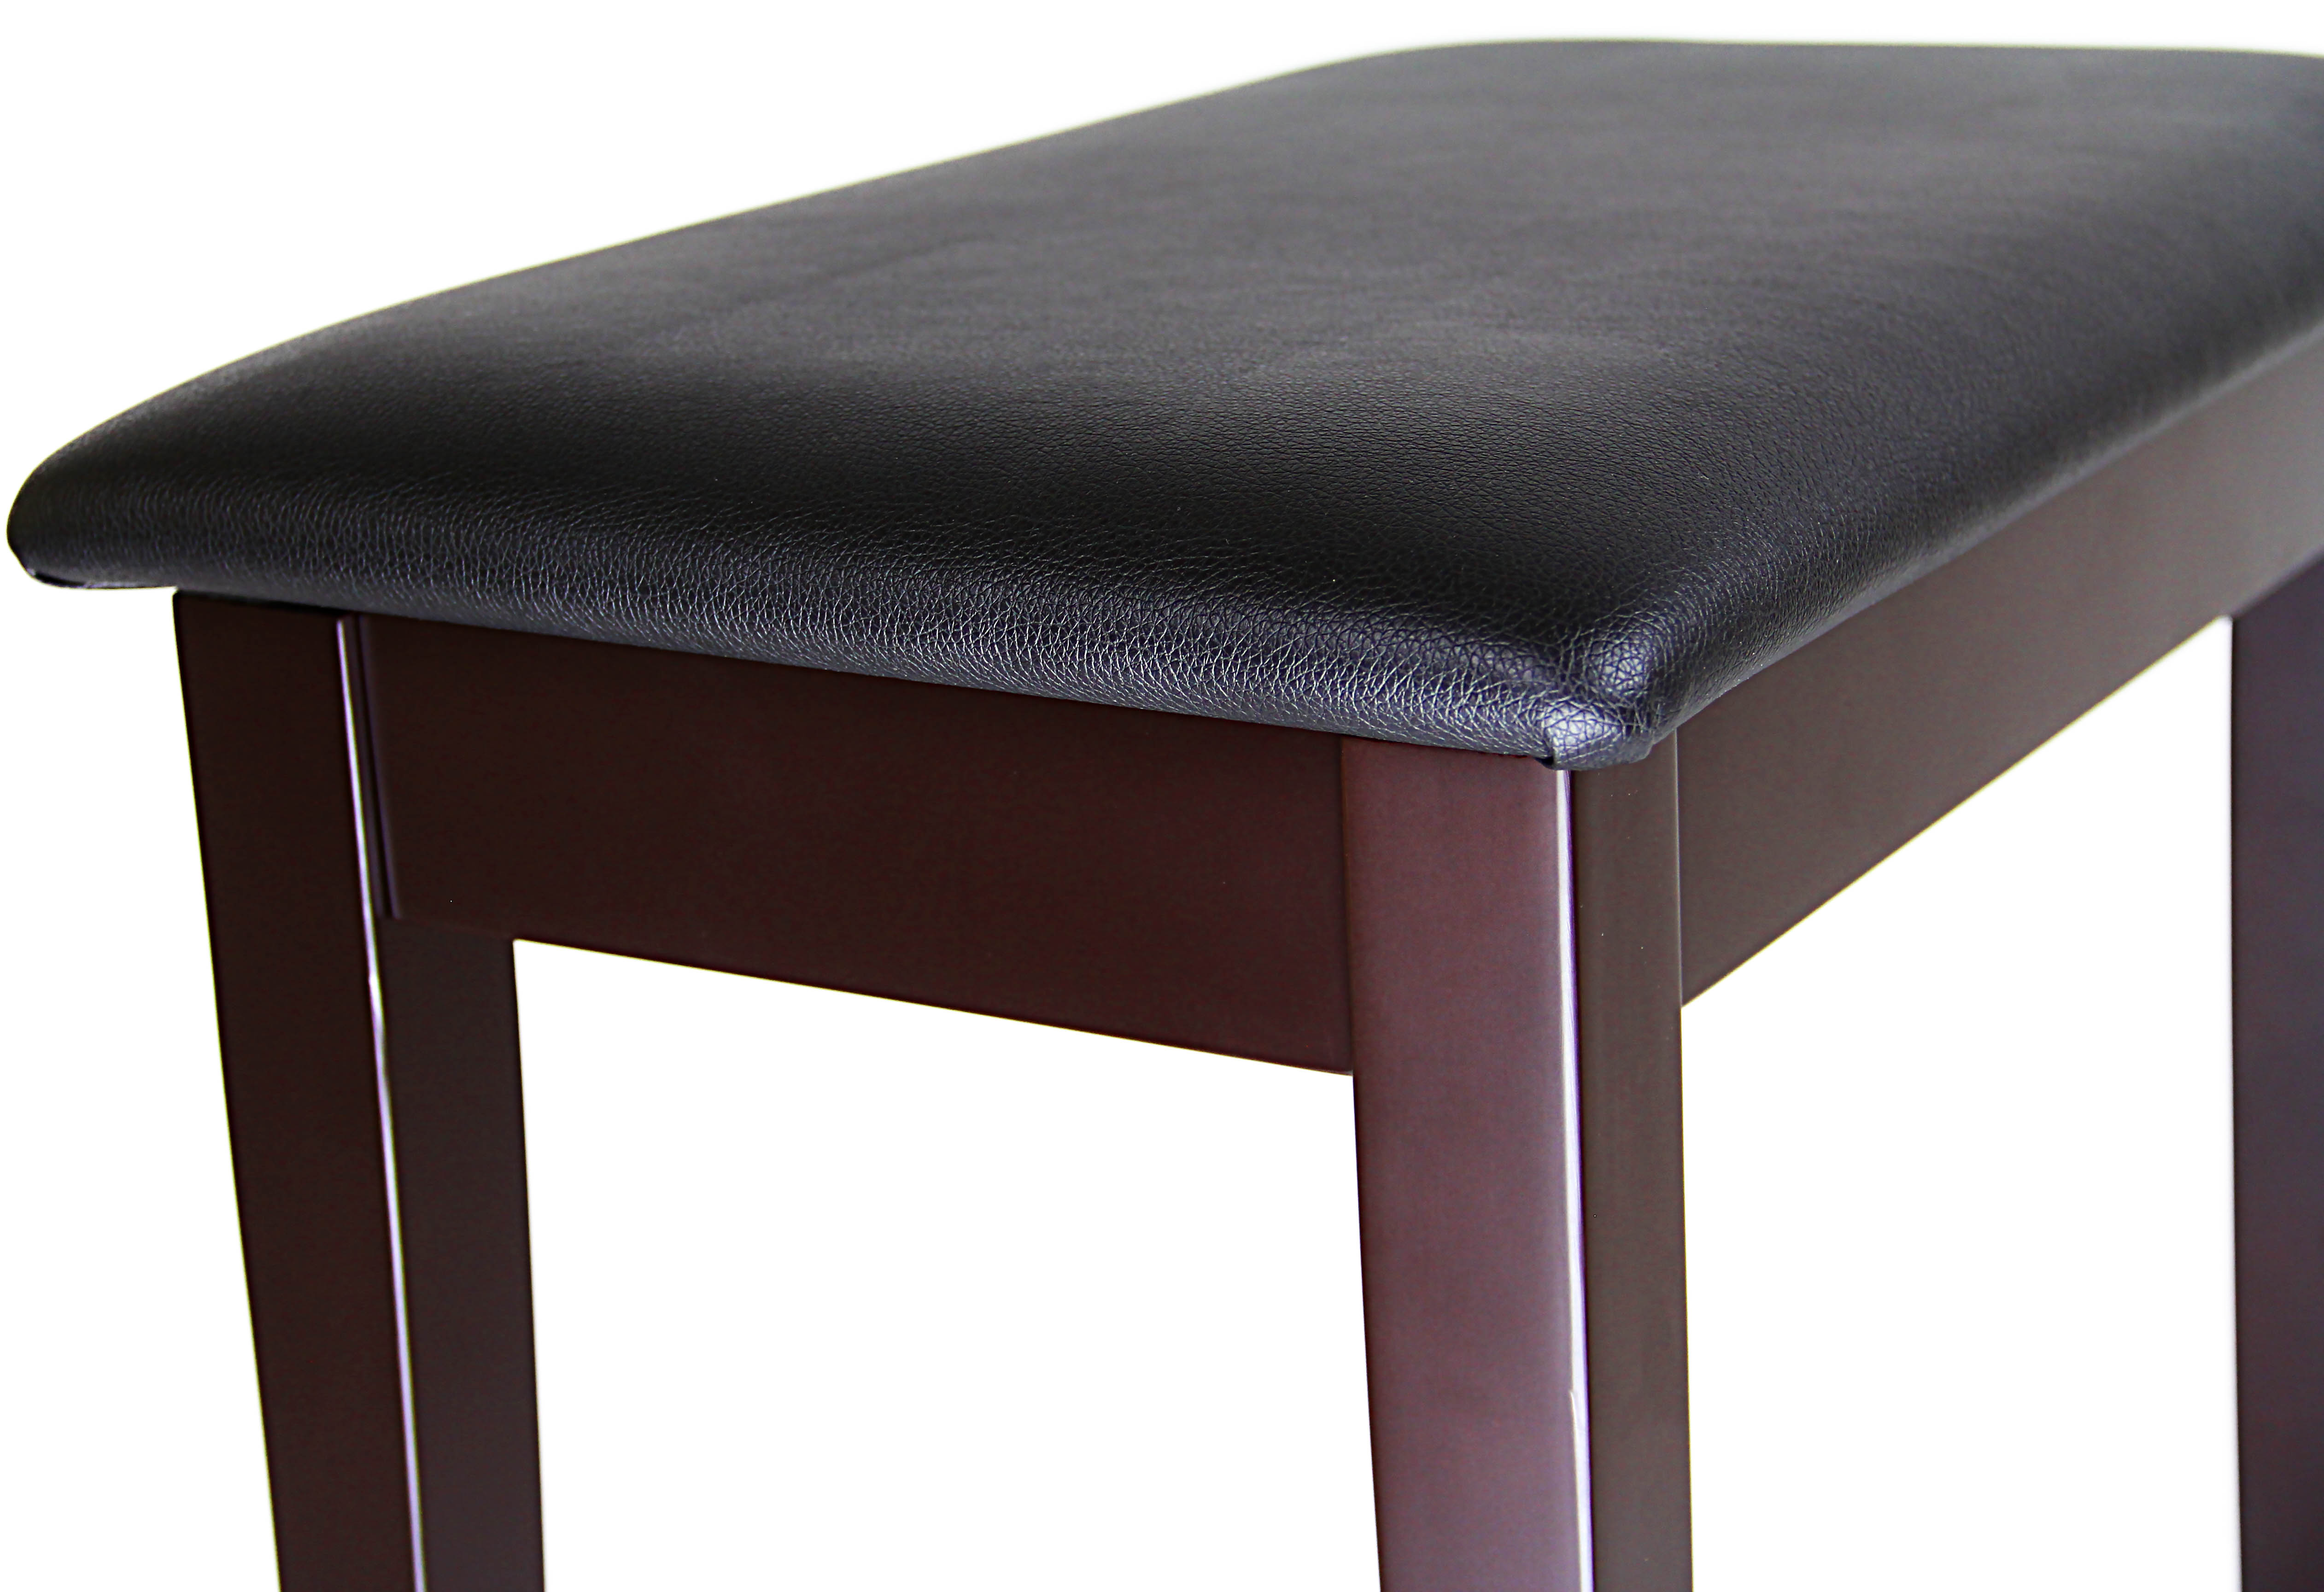 Barcelona Flip Top Piano Bench Rosewood with Matte Finish